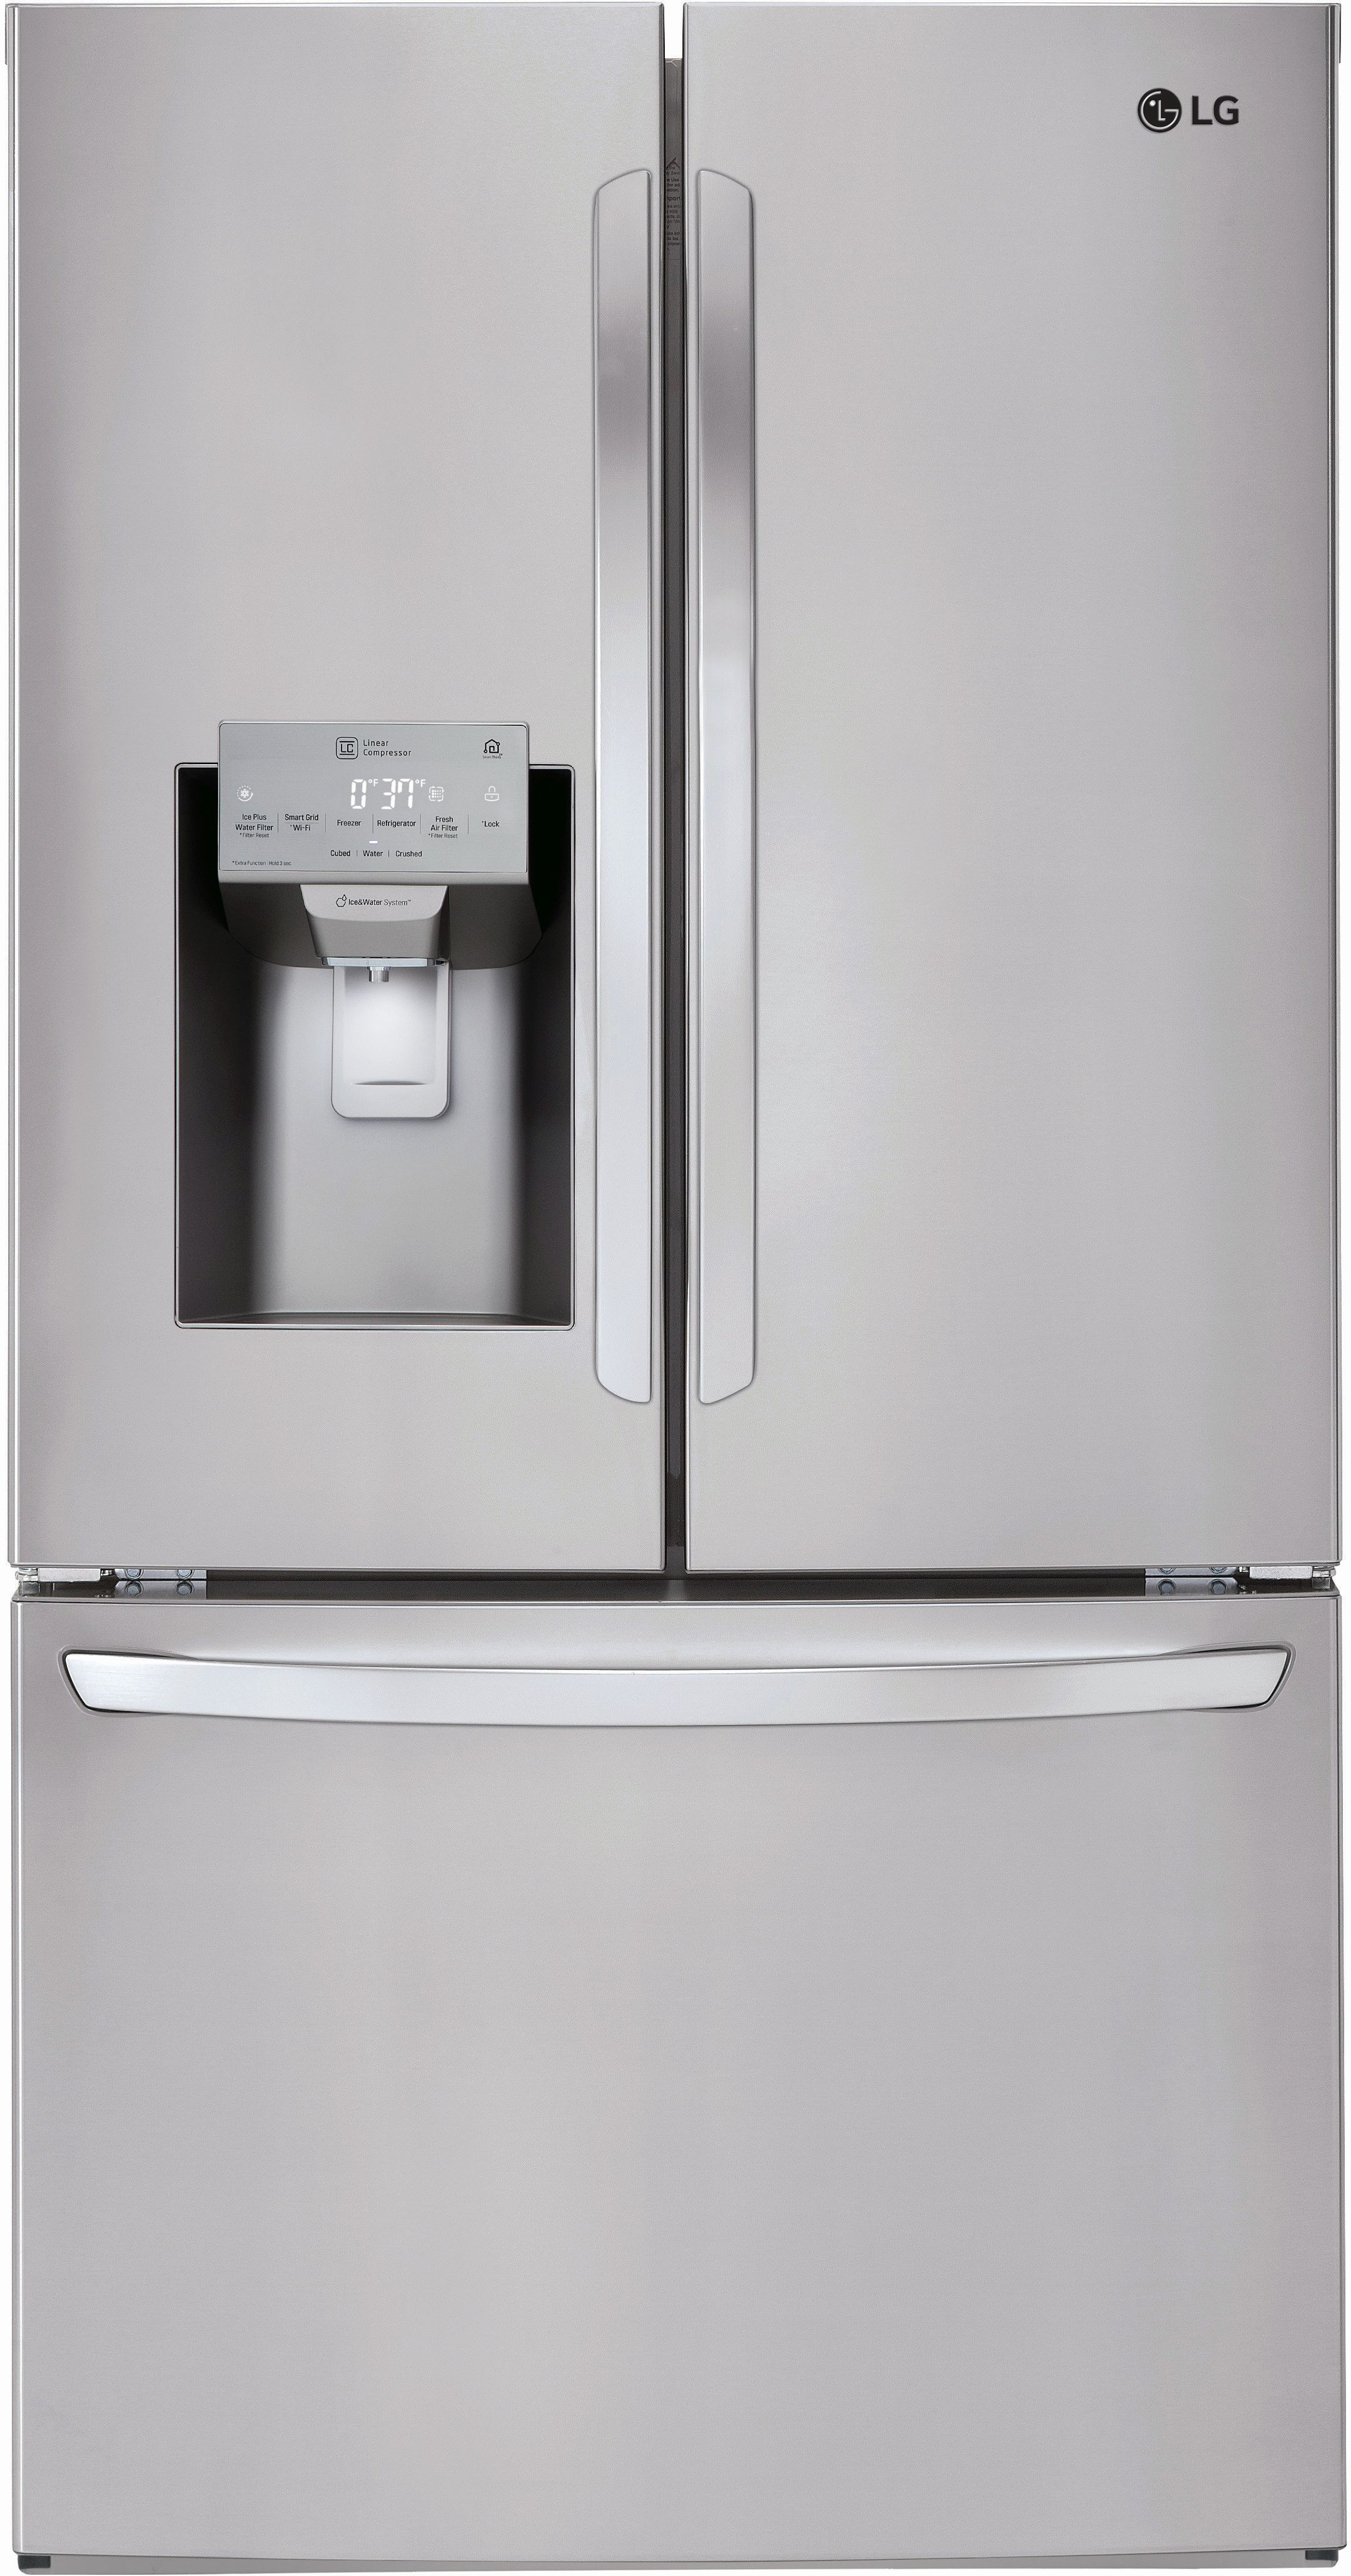 LG 22 Cu. Ft. Counter Depth French Door Refrigerator Stainless  Steel LFXC22526S ...